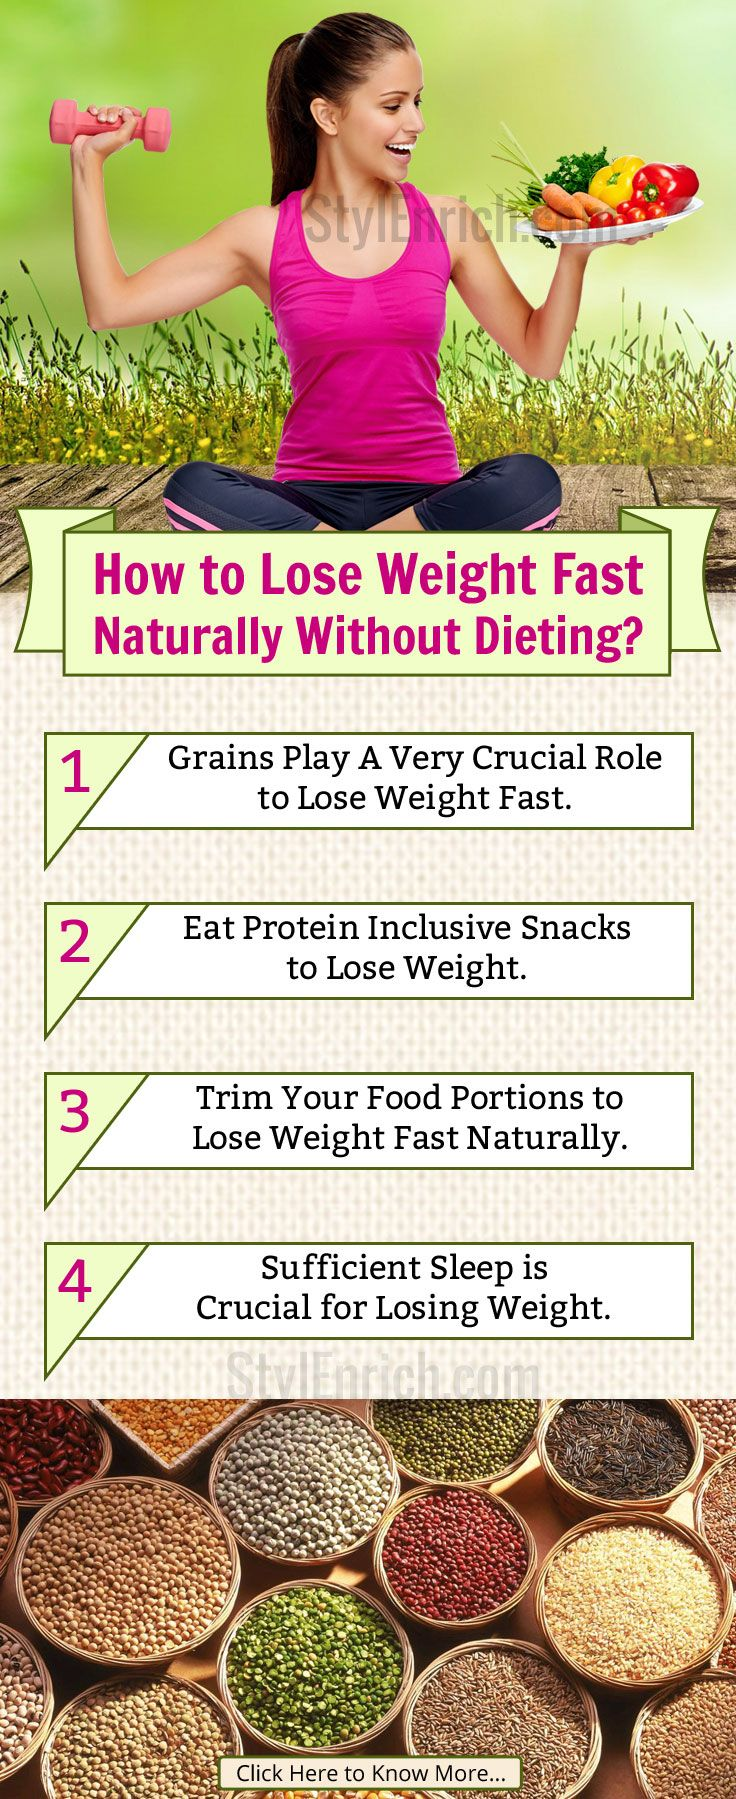 Want to get rid of extra fat as soon as possible? Let's discuss here some important and useful tips on how to #LoseWeight fast naturally with the help of this you can get the perfect body form without trying too hard.